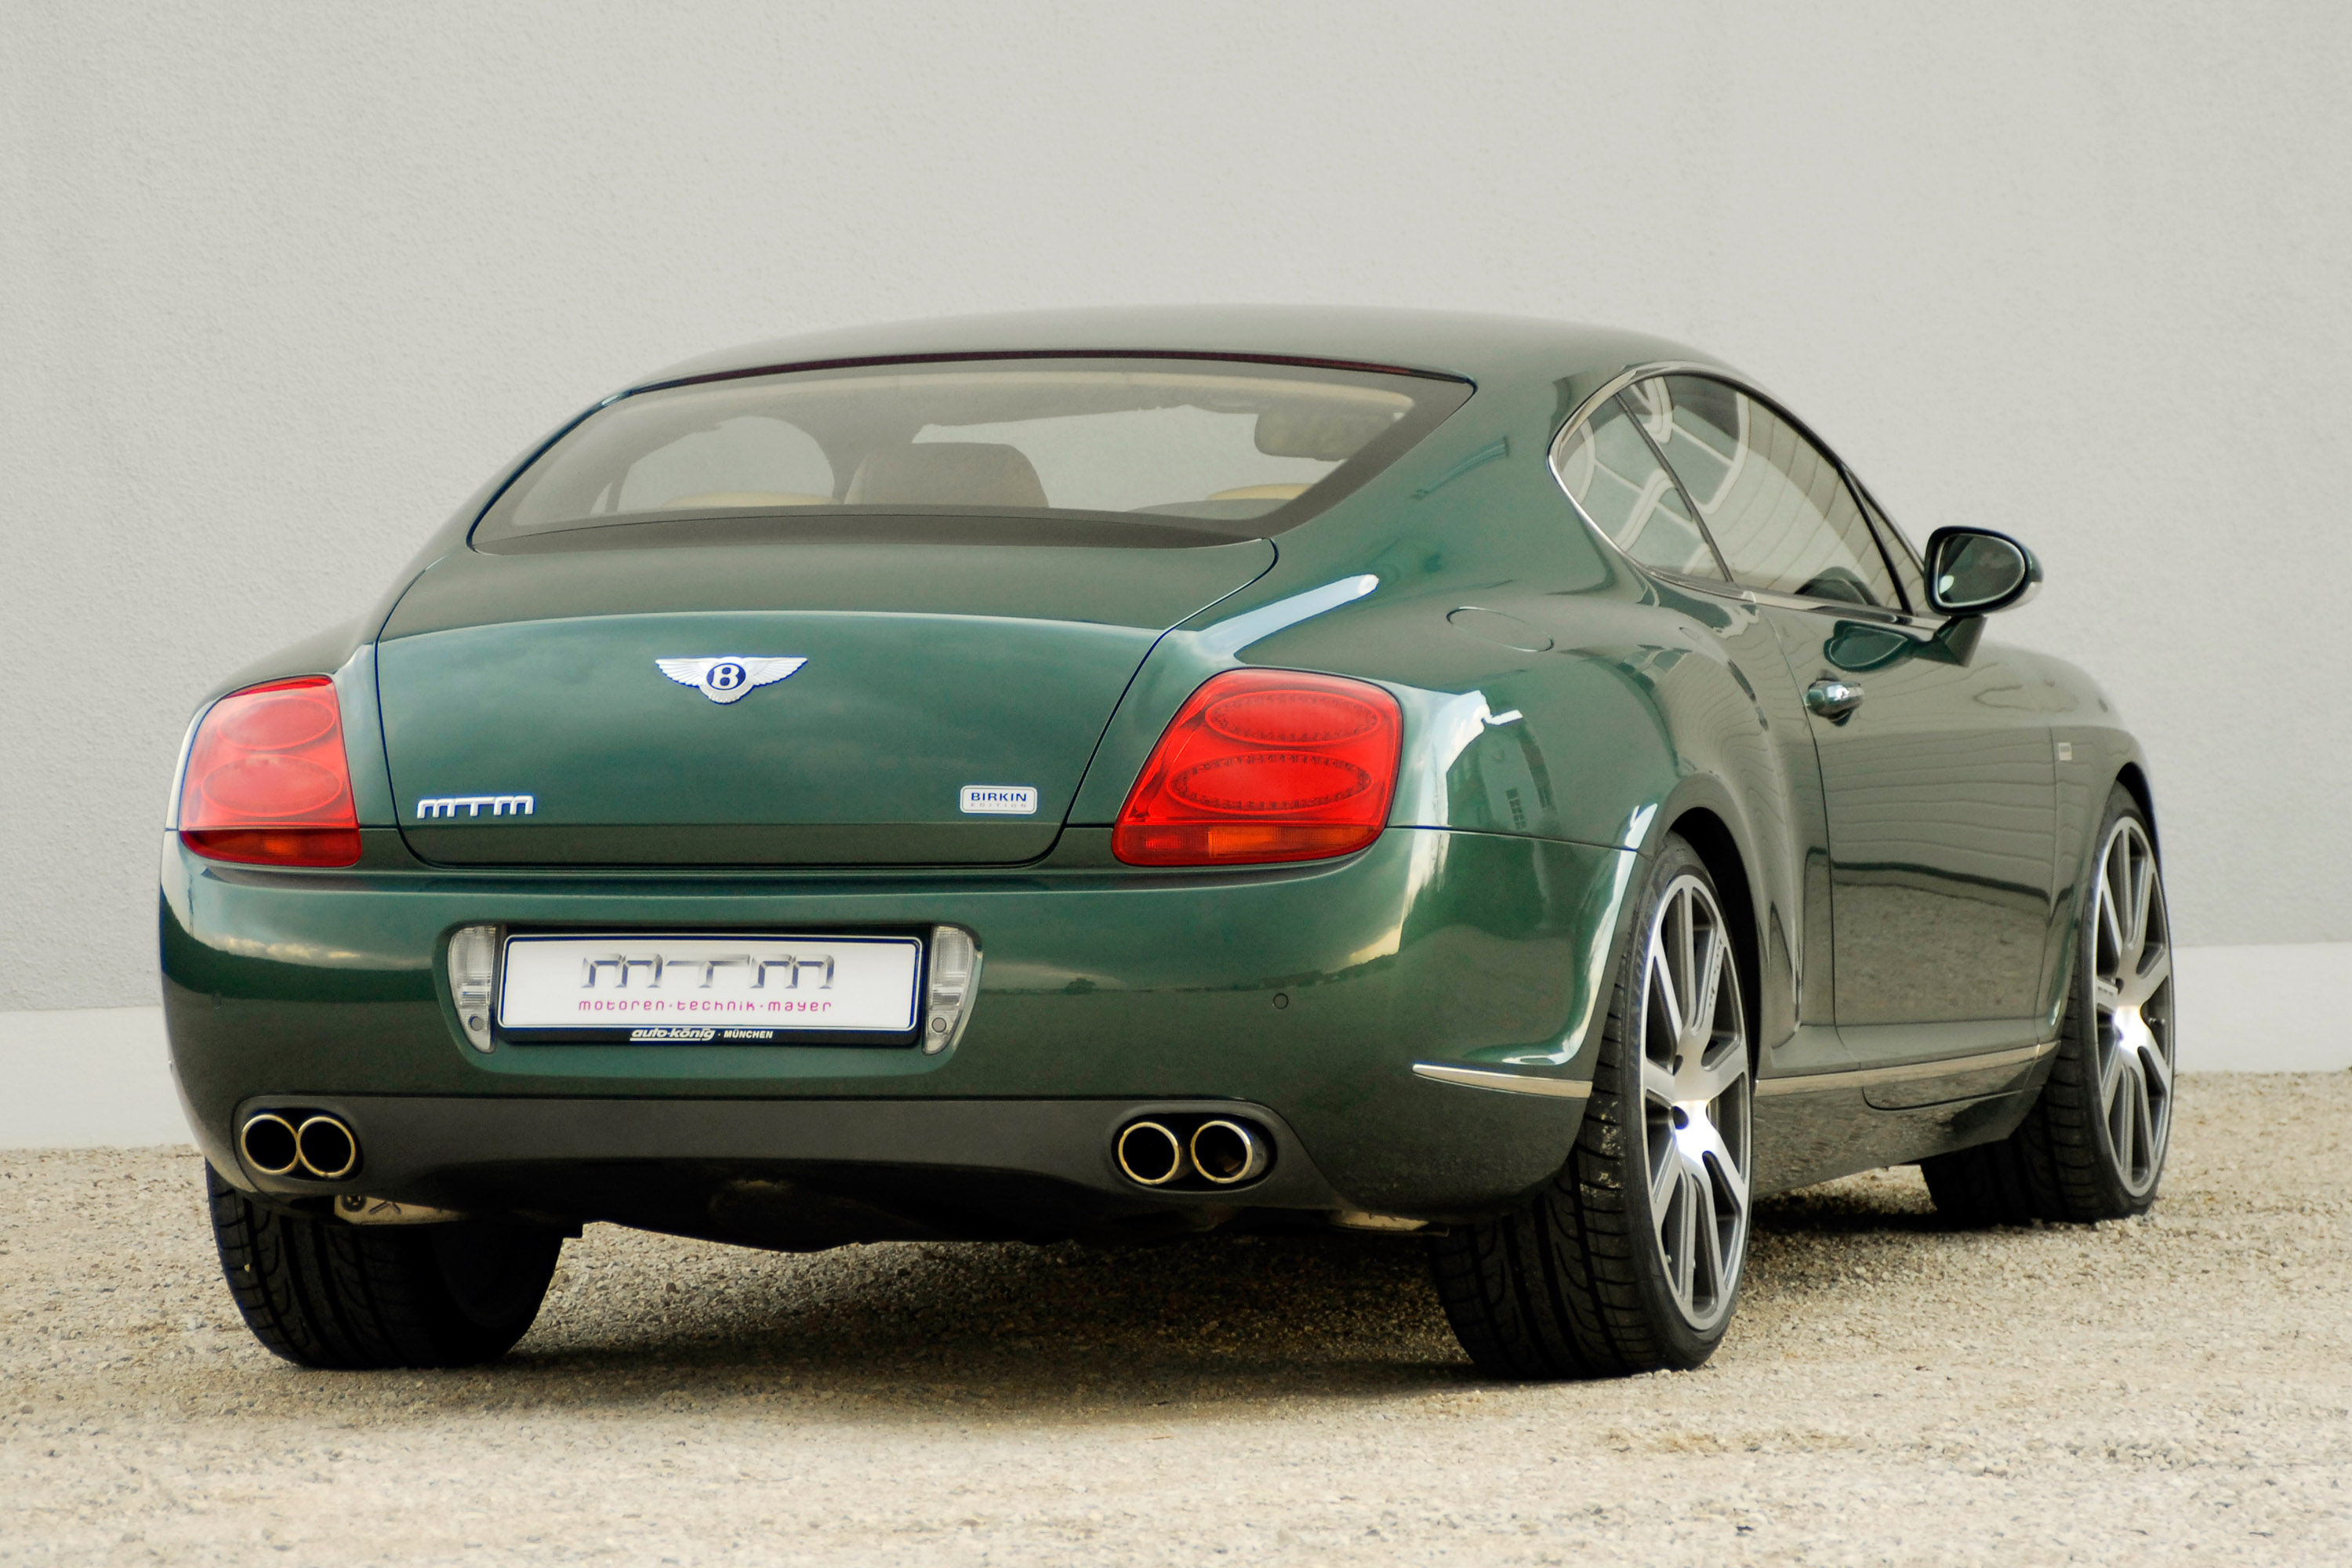 loading top seater drop fastest four coast speed photos gt images continental world convertible revealed price worlds bentley s